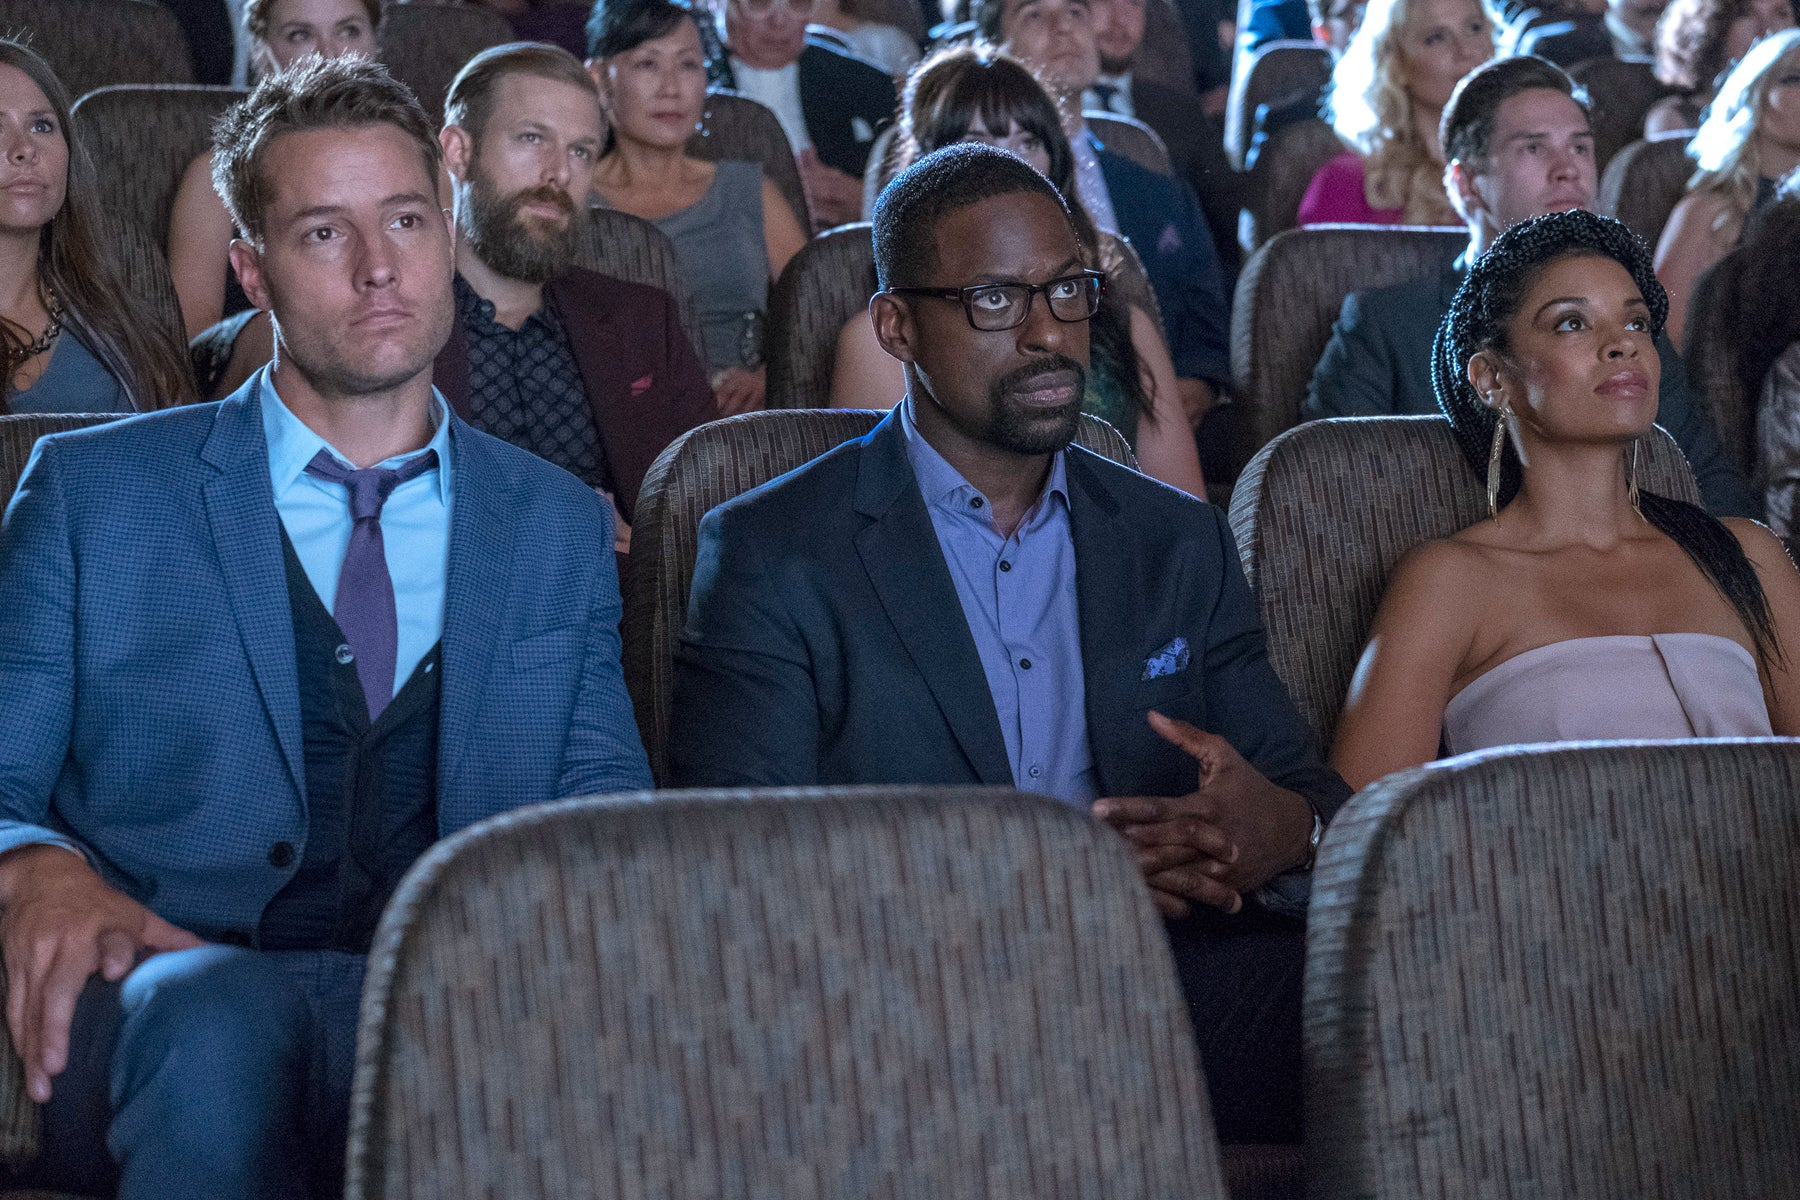 Kevin (Justin Hartley), Randall (Sterling K. Brown) ve Beth Pearson (Susan Kelechi Watson) This Is Us'un bir bölümünde karanlık ve kalabalık bir tiyatroda oturuyorlar.